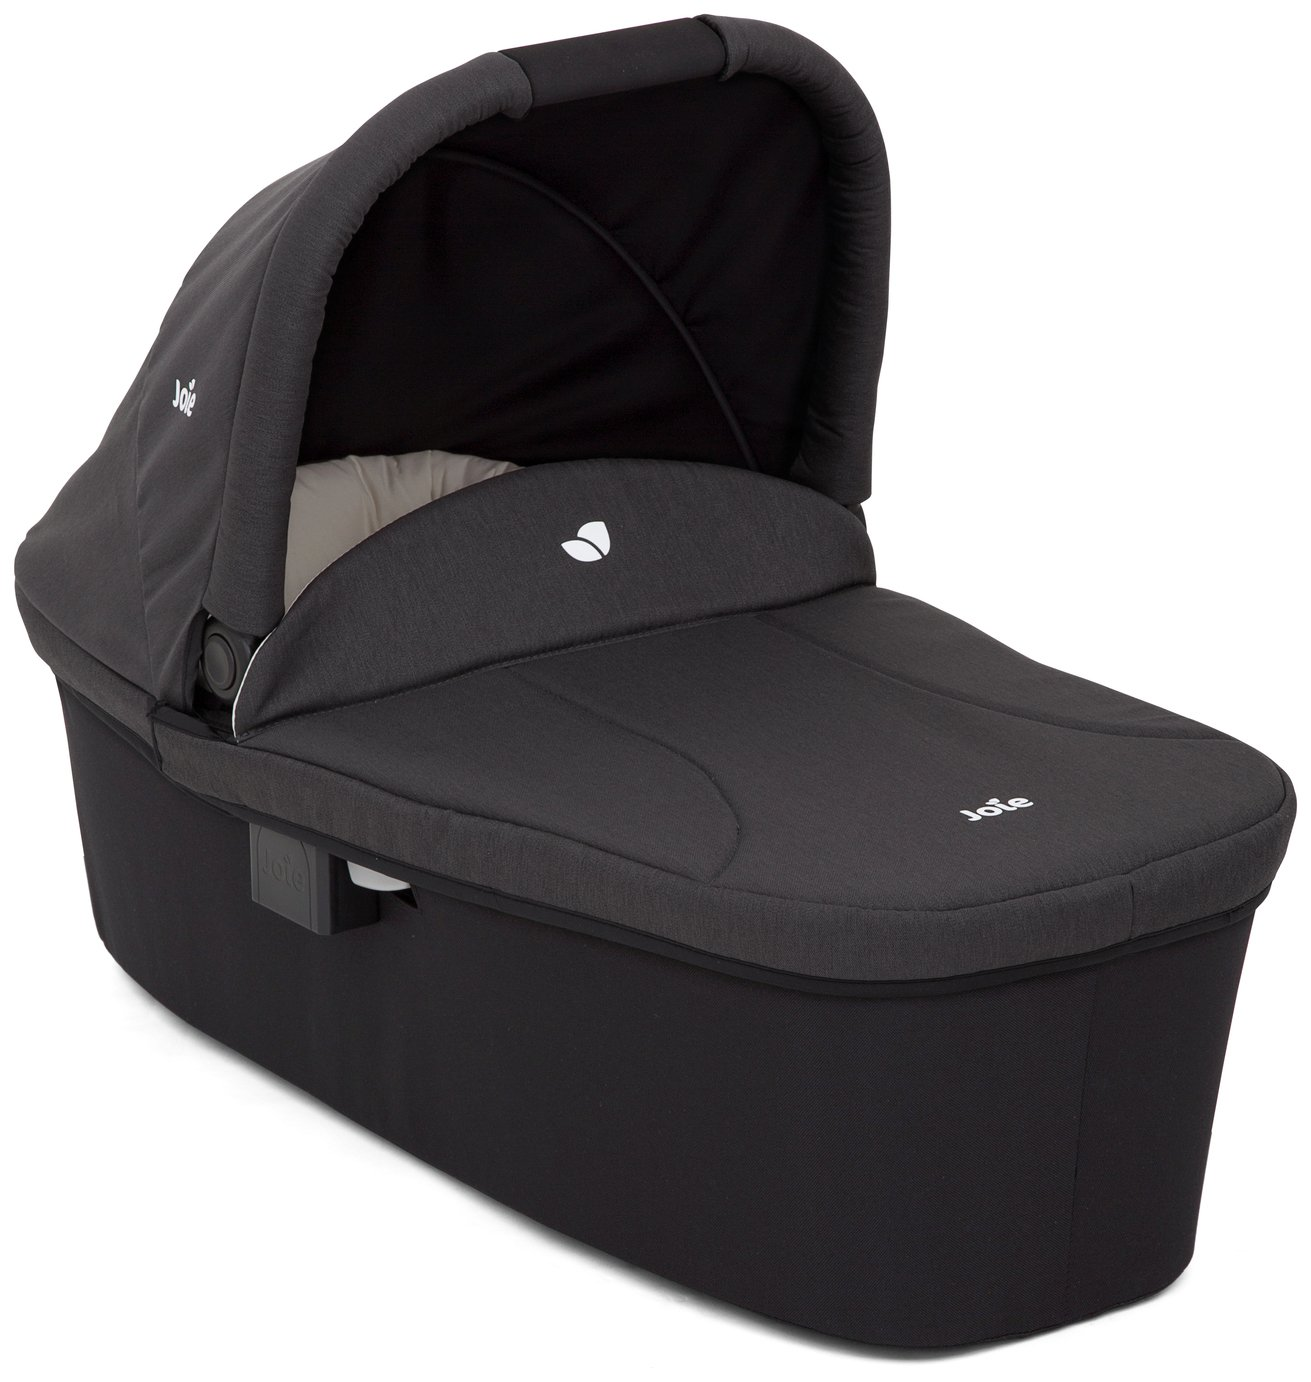 Image of Joie Litetrax Ember Carry Cot